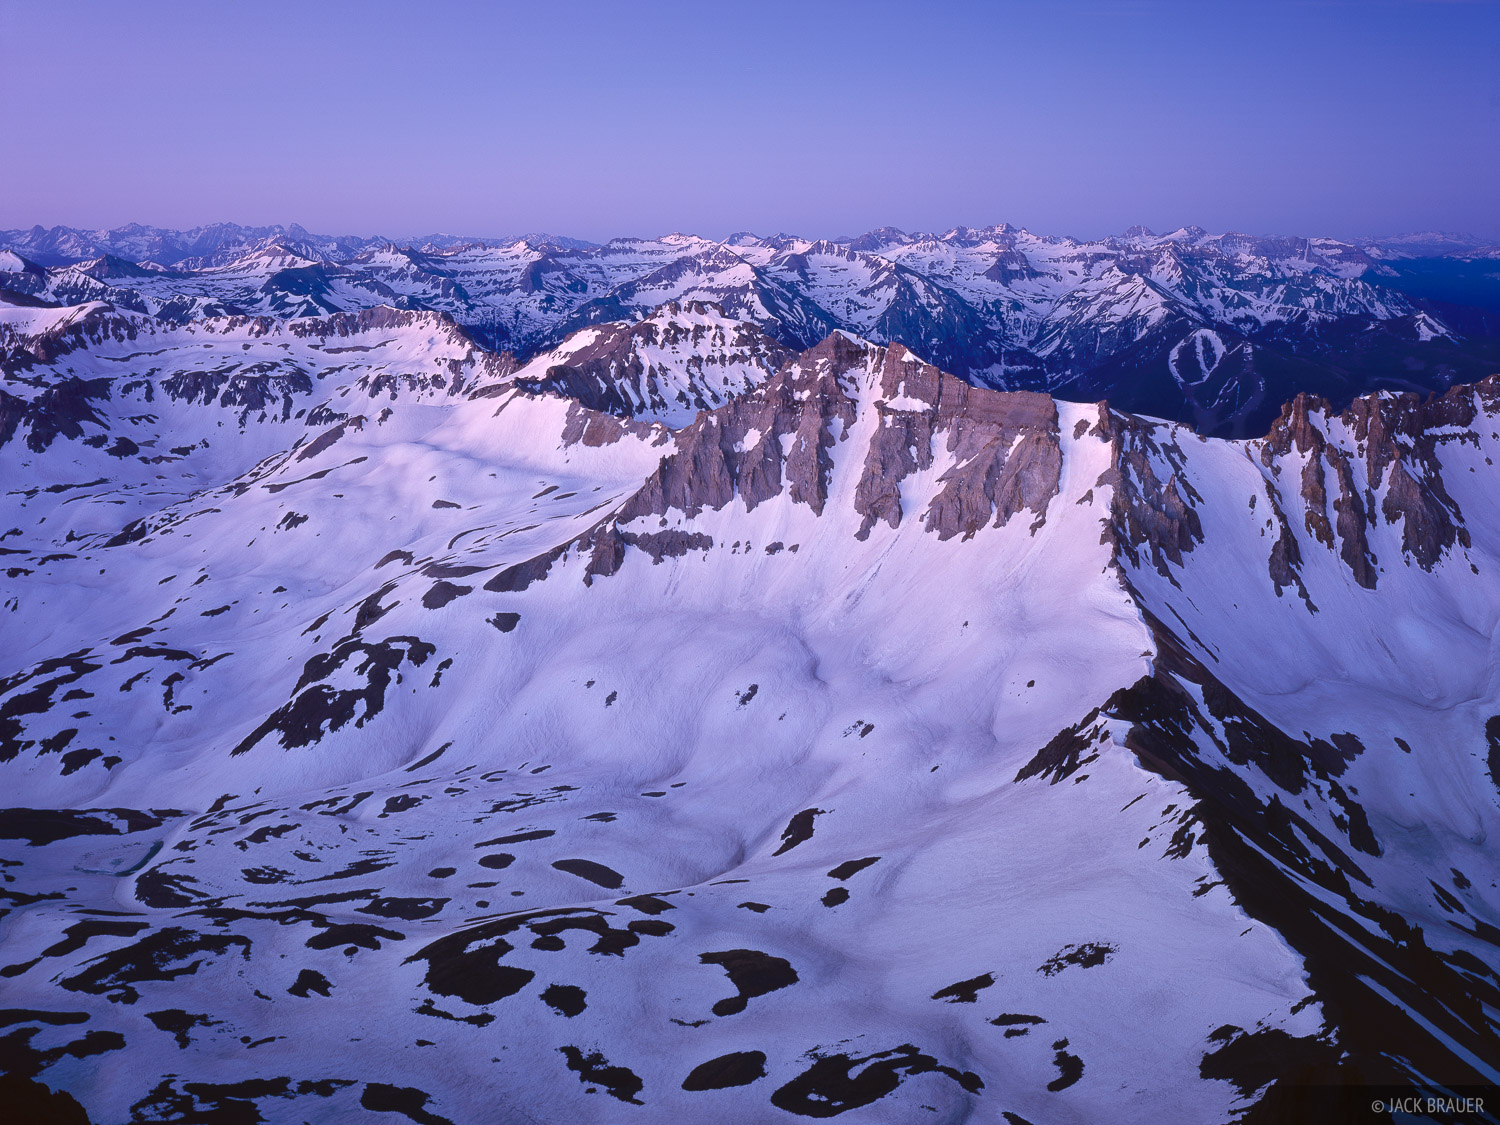 Dawn, Mt. Sneffels, summit, San Juan Mountains, Colorado, photo